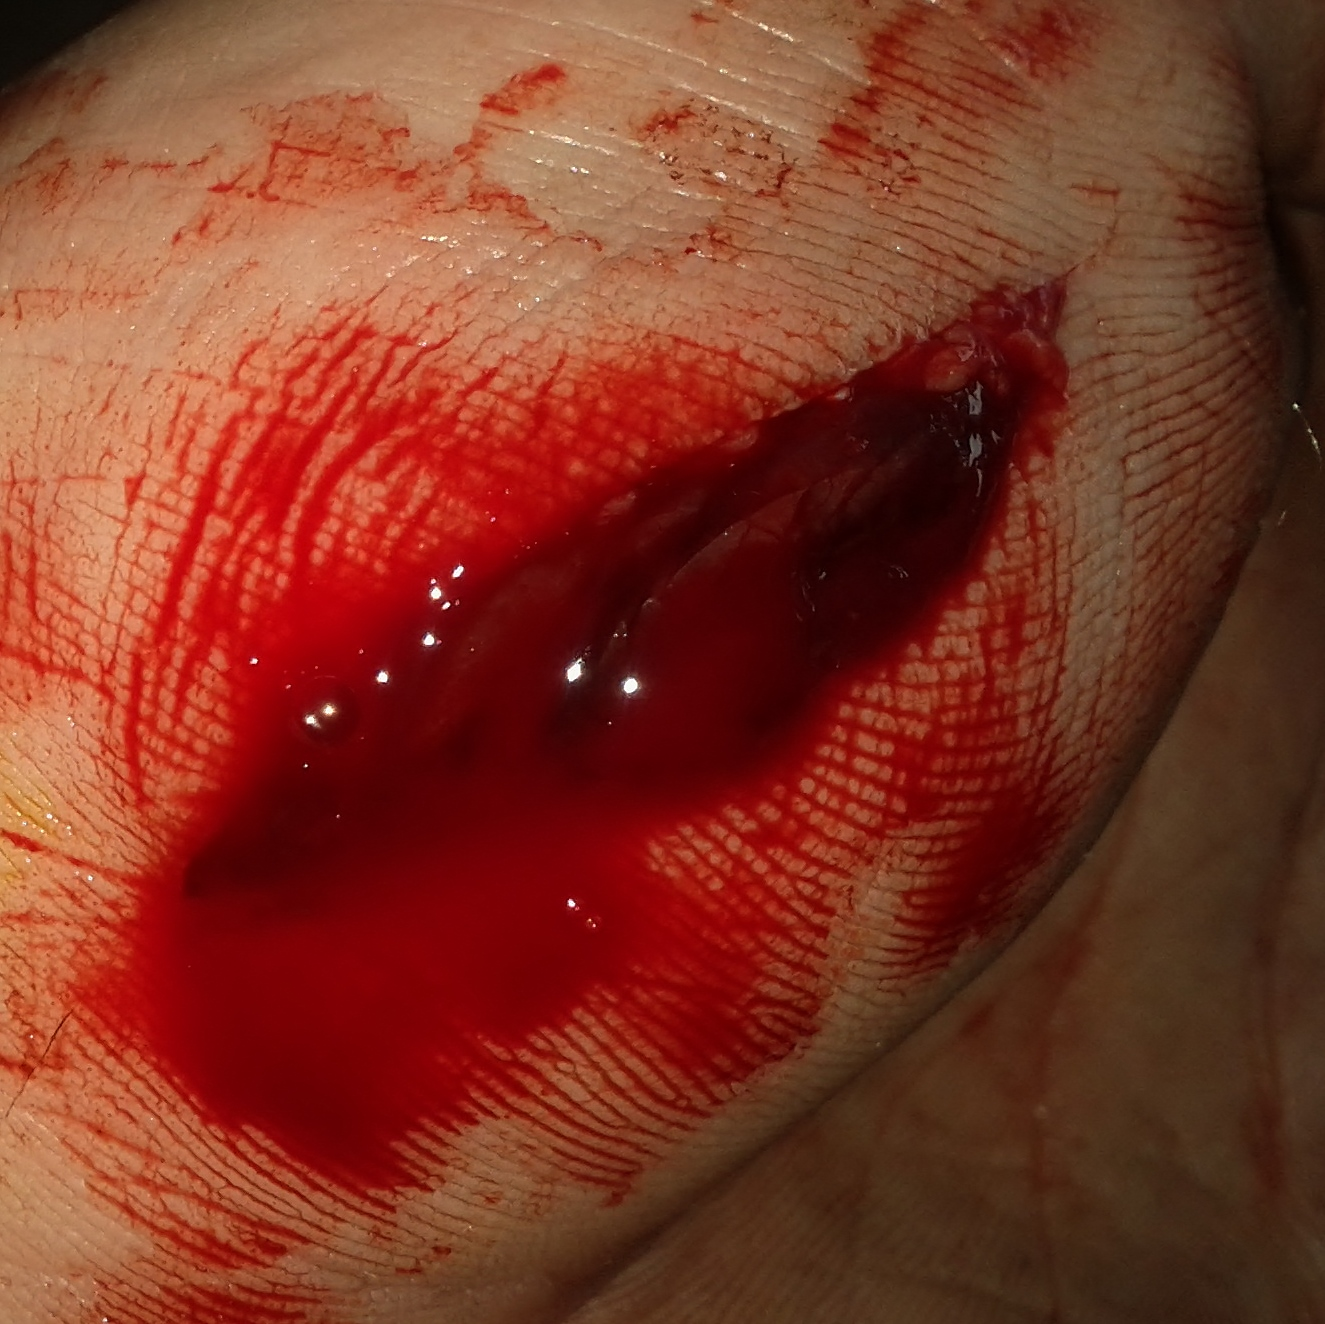 Broken Glass With Blood